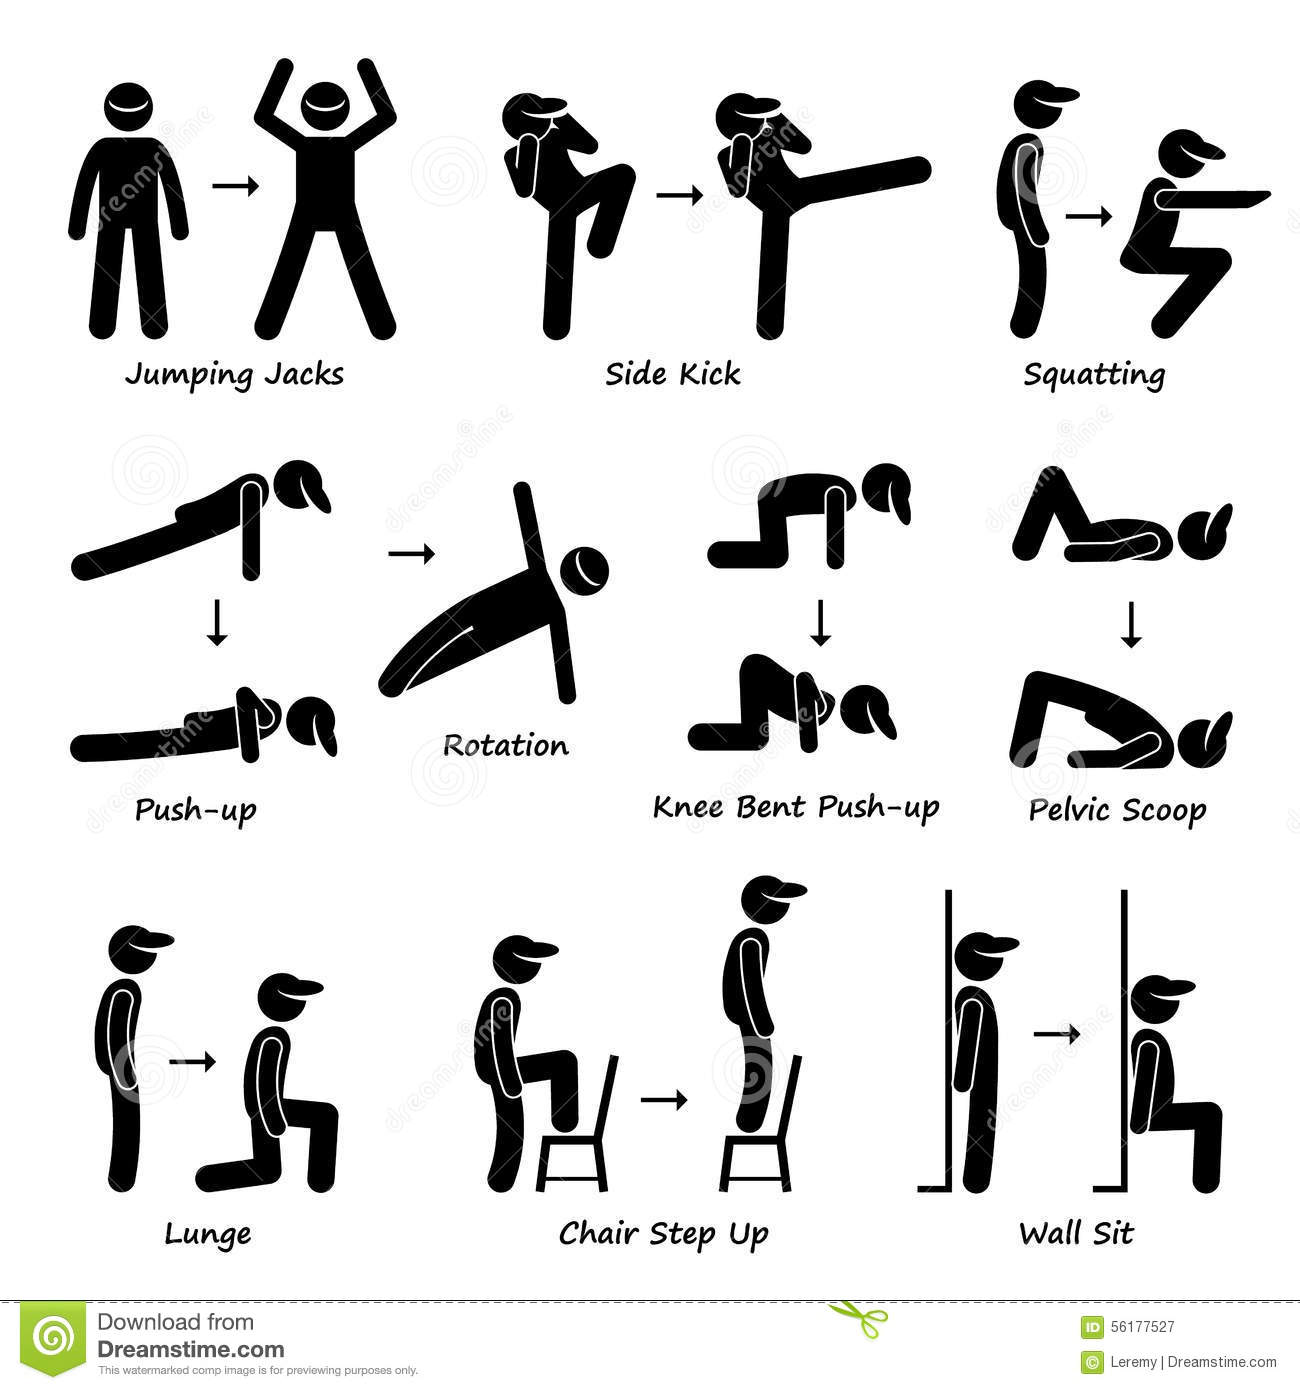 united states map wall art with Stock Illustration Body Workout Exercise Fitness Training Set Clipart Human Pictogram Showing Plank Variation Poses Jumping Jacks Side Image56177527 on Stock Illustration Mock Up Blank Poster Wall Living Room Background Template Design Image47003135 moreover Stock Illustration Geometric Star Pattern Grey Lines White Background Islamic Vector Image46992334 additionally Blue Grunge Watercolour Paint Wallpaper Mural together with Millennium Park In Chicago furthermore Stock Photography Boy Karate Kick Vector Illustration Image36068082.